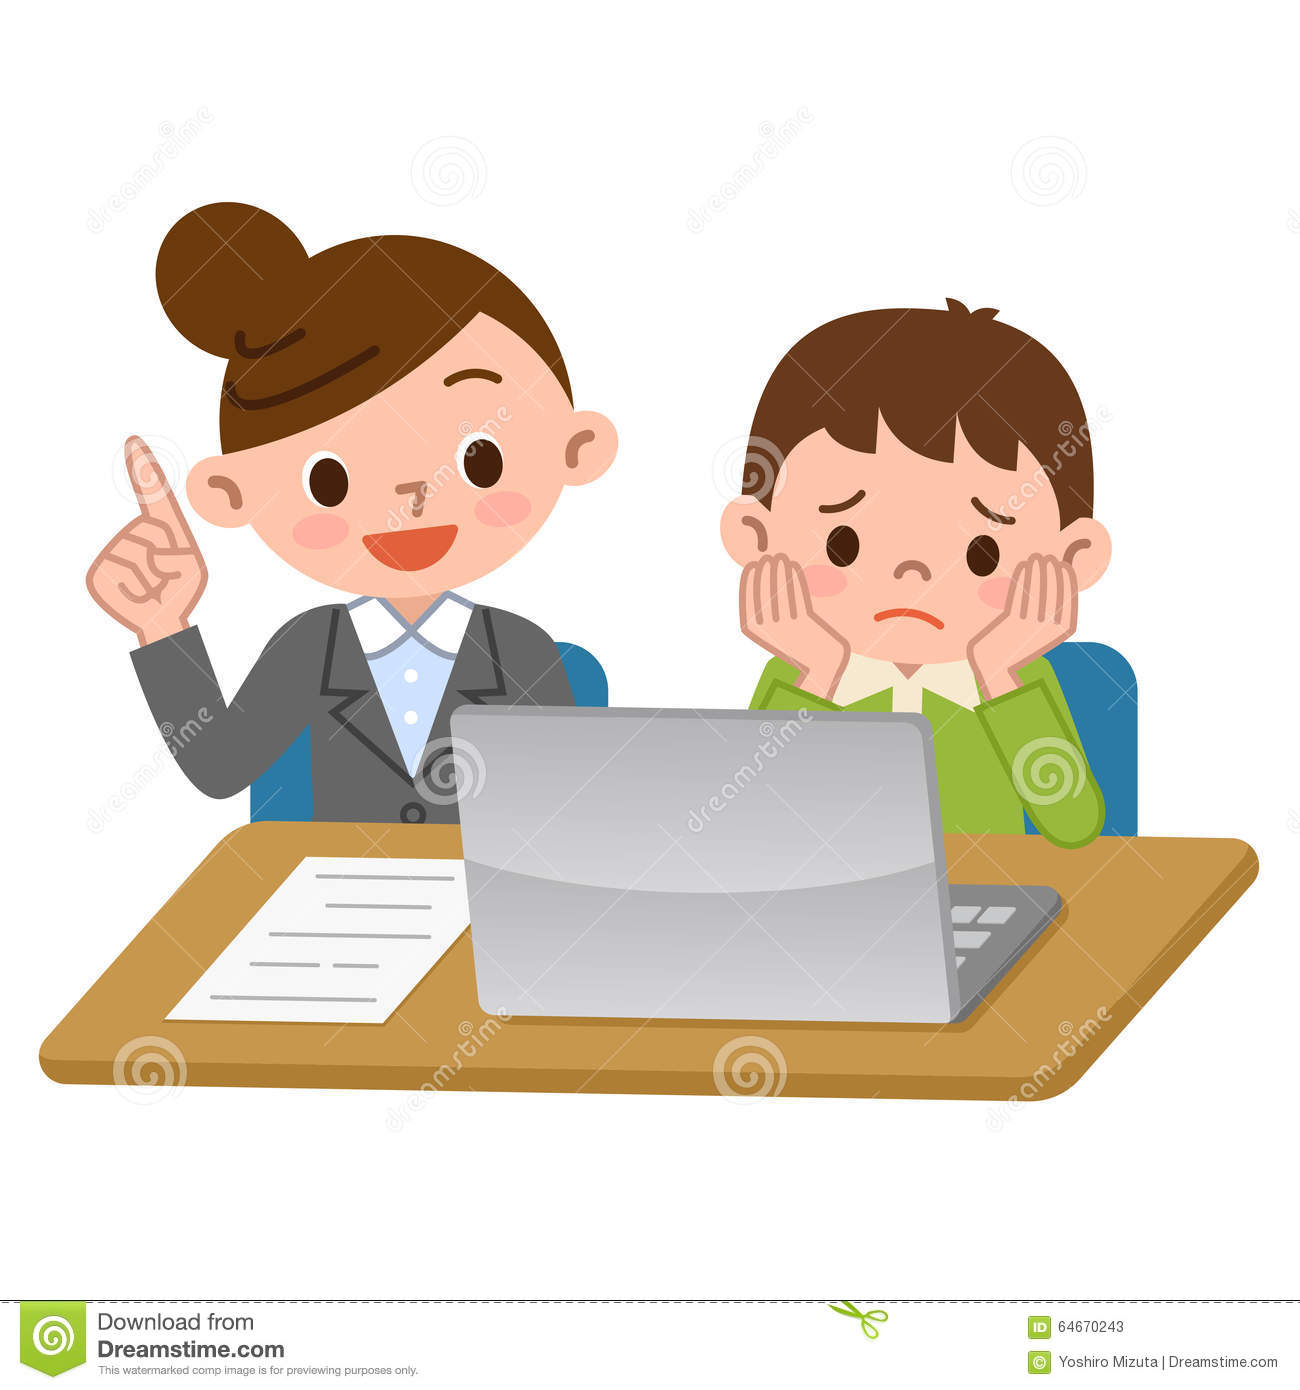 teachers and students of computer learning stock vector Recess Clip Art teacher helping student clipart